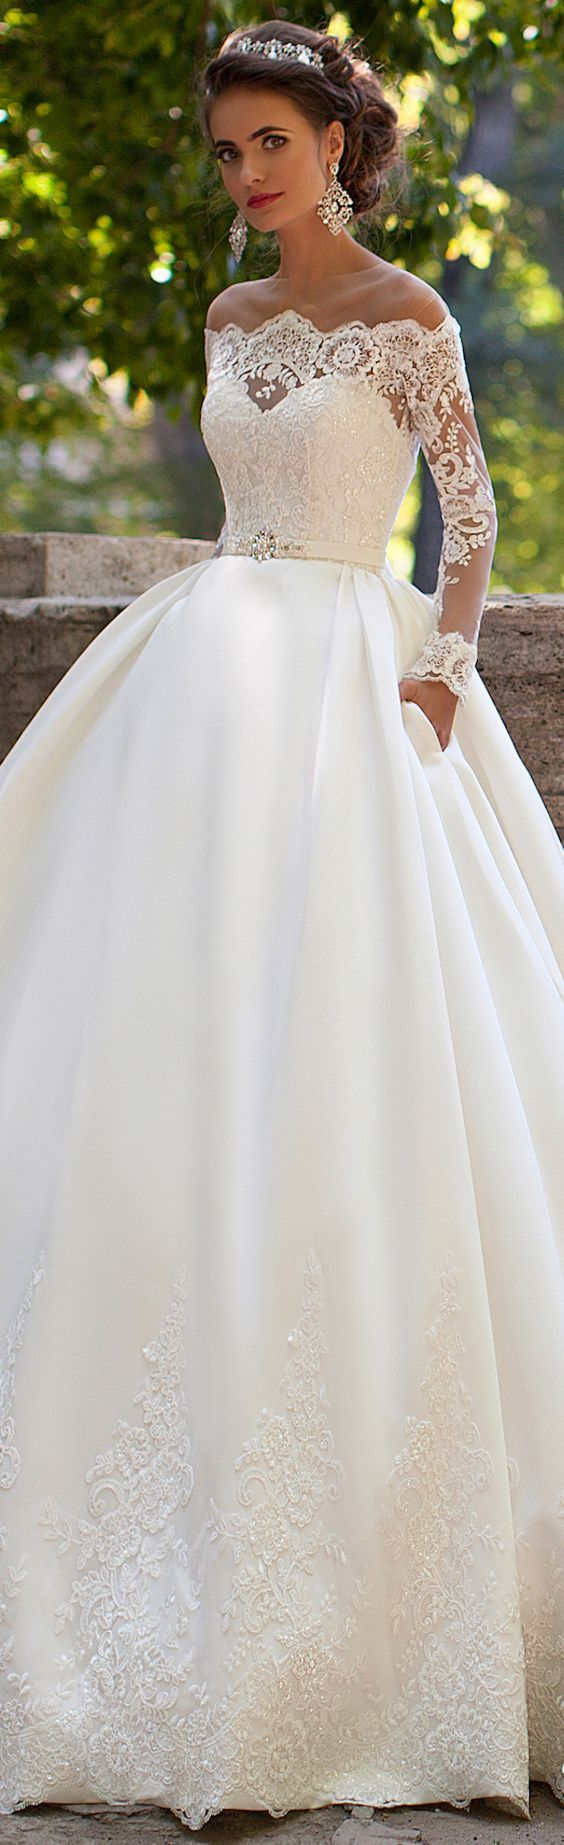 Milla Nova 2016 off shoulder long sleeves wedding dresses